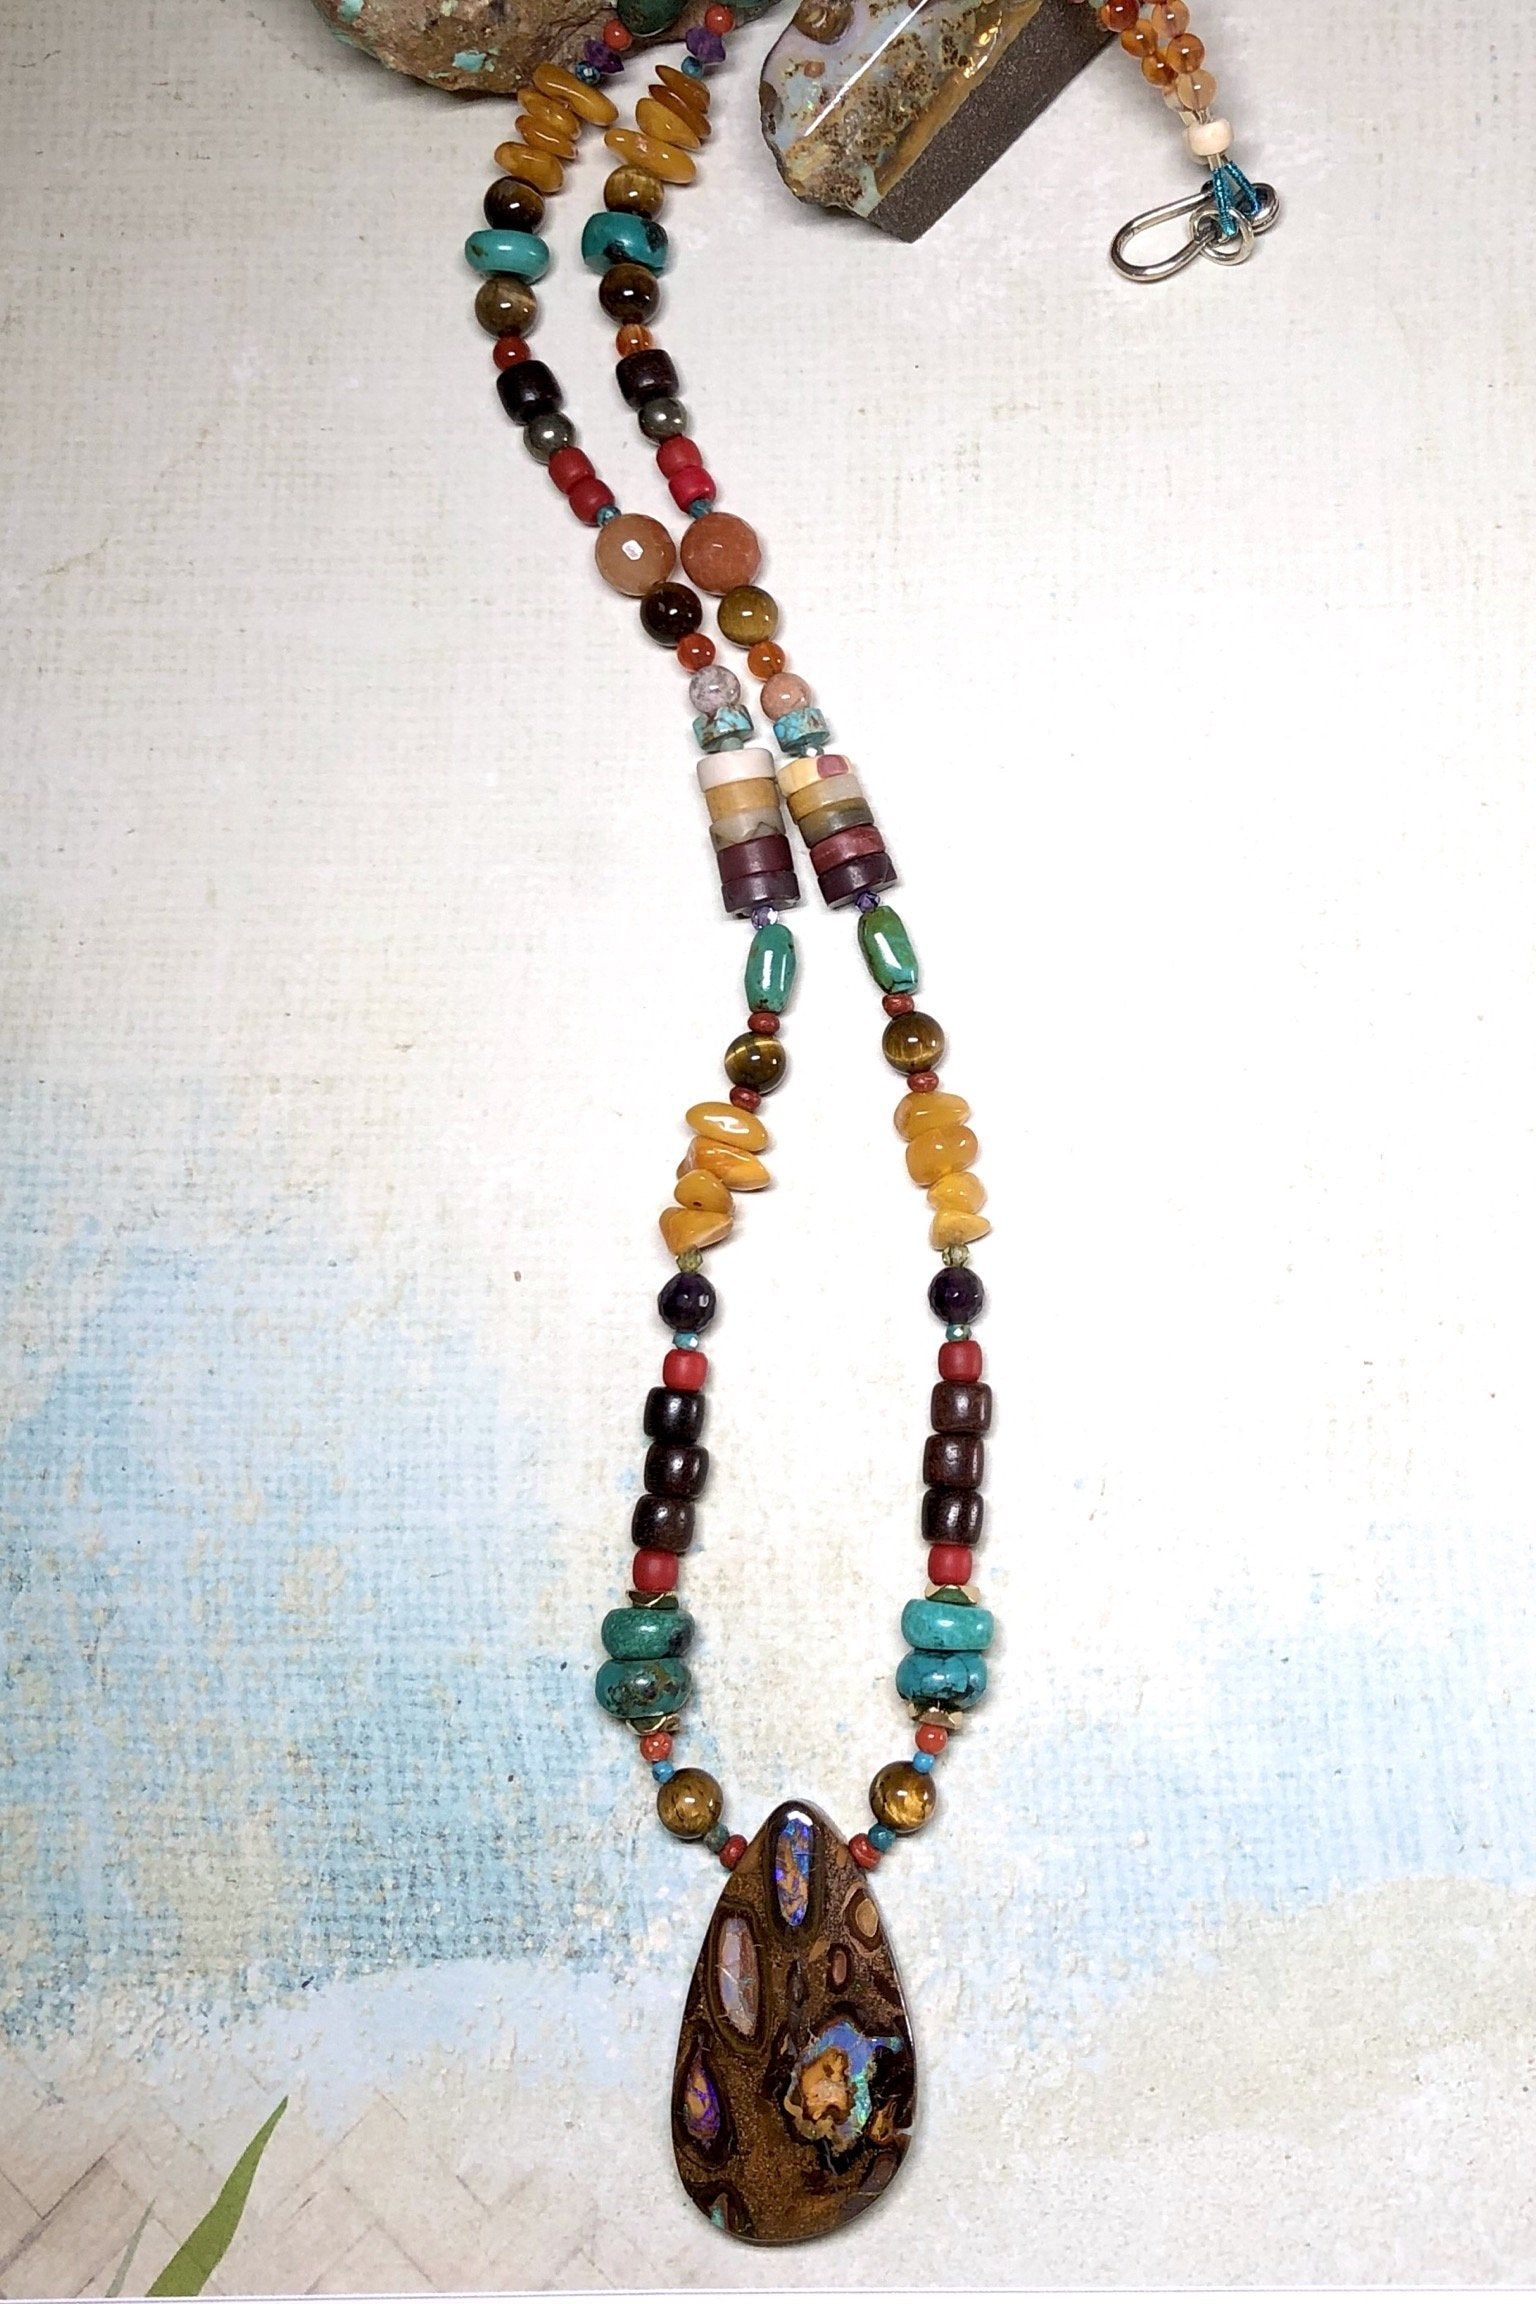 A powerful gemstone necklace with natural stones.